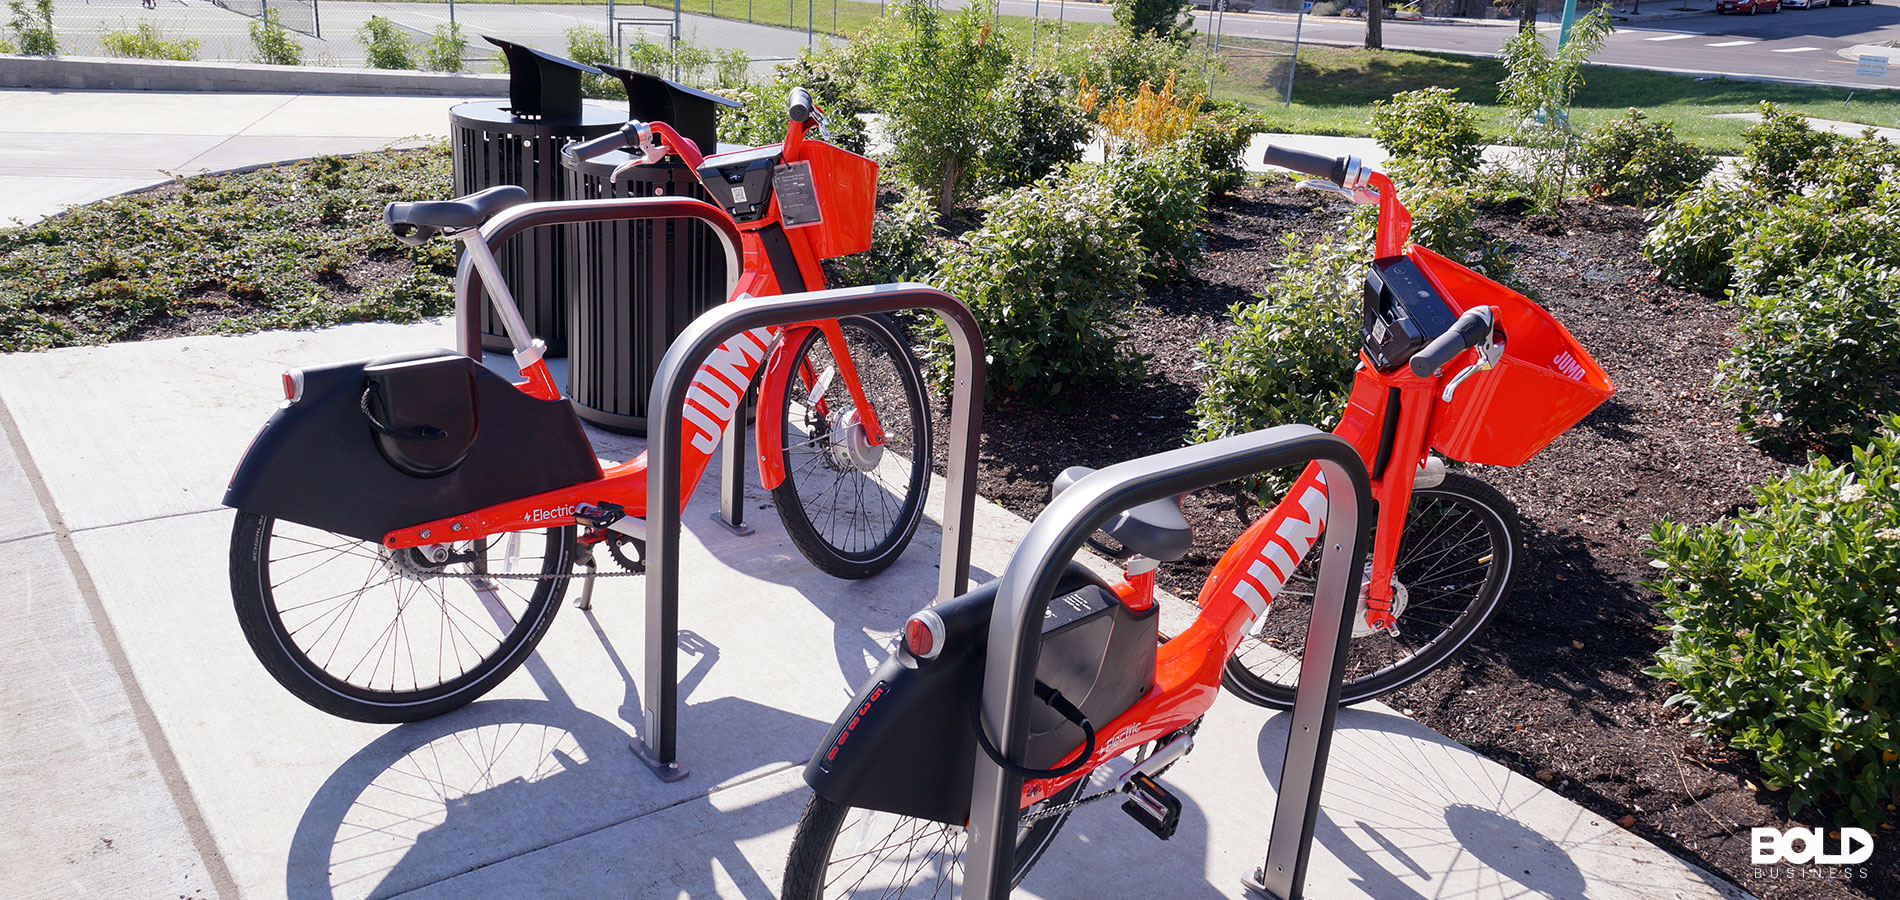 Some e-bikes waiting patiently for riders